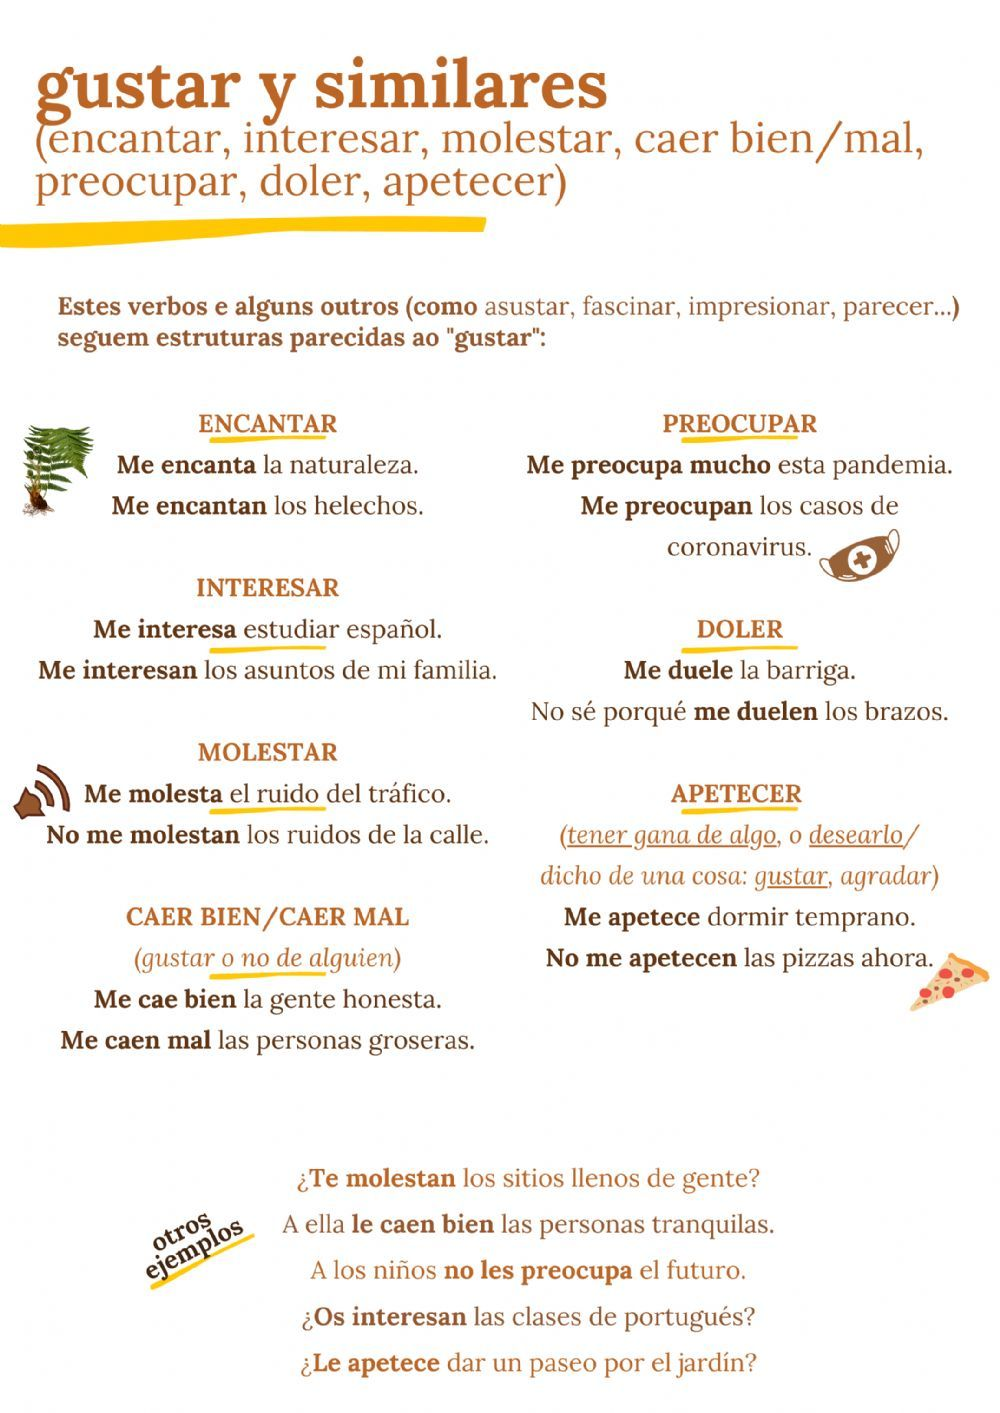 El Verbo Gustar Online Activity For Iniciante You Can Do The Exercises Online Or Download The Wo In 2021 Spanish Reading Comprehension Spanish Reading Spanish Lessons [ 1413 x 1000 Pixel ]